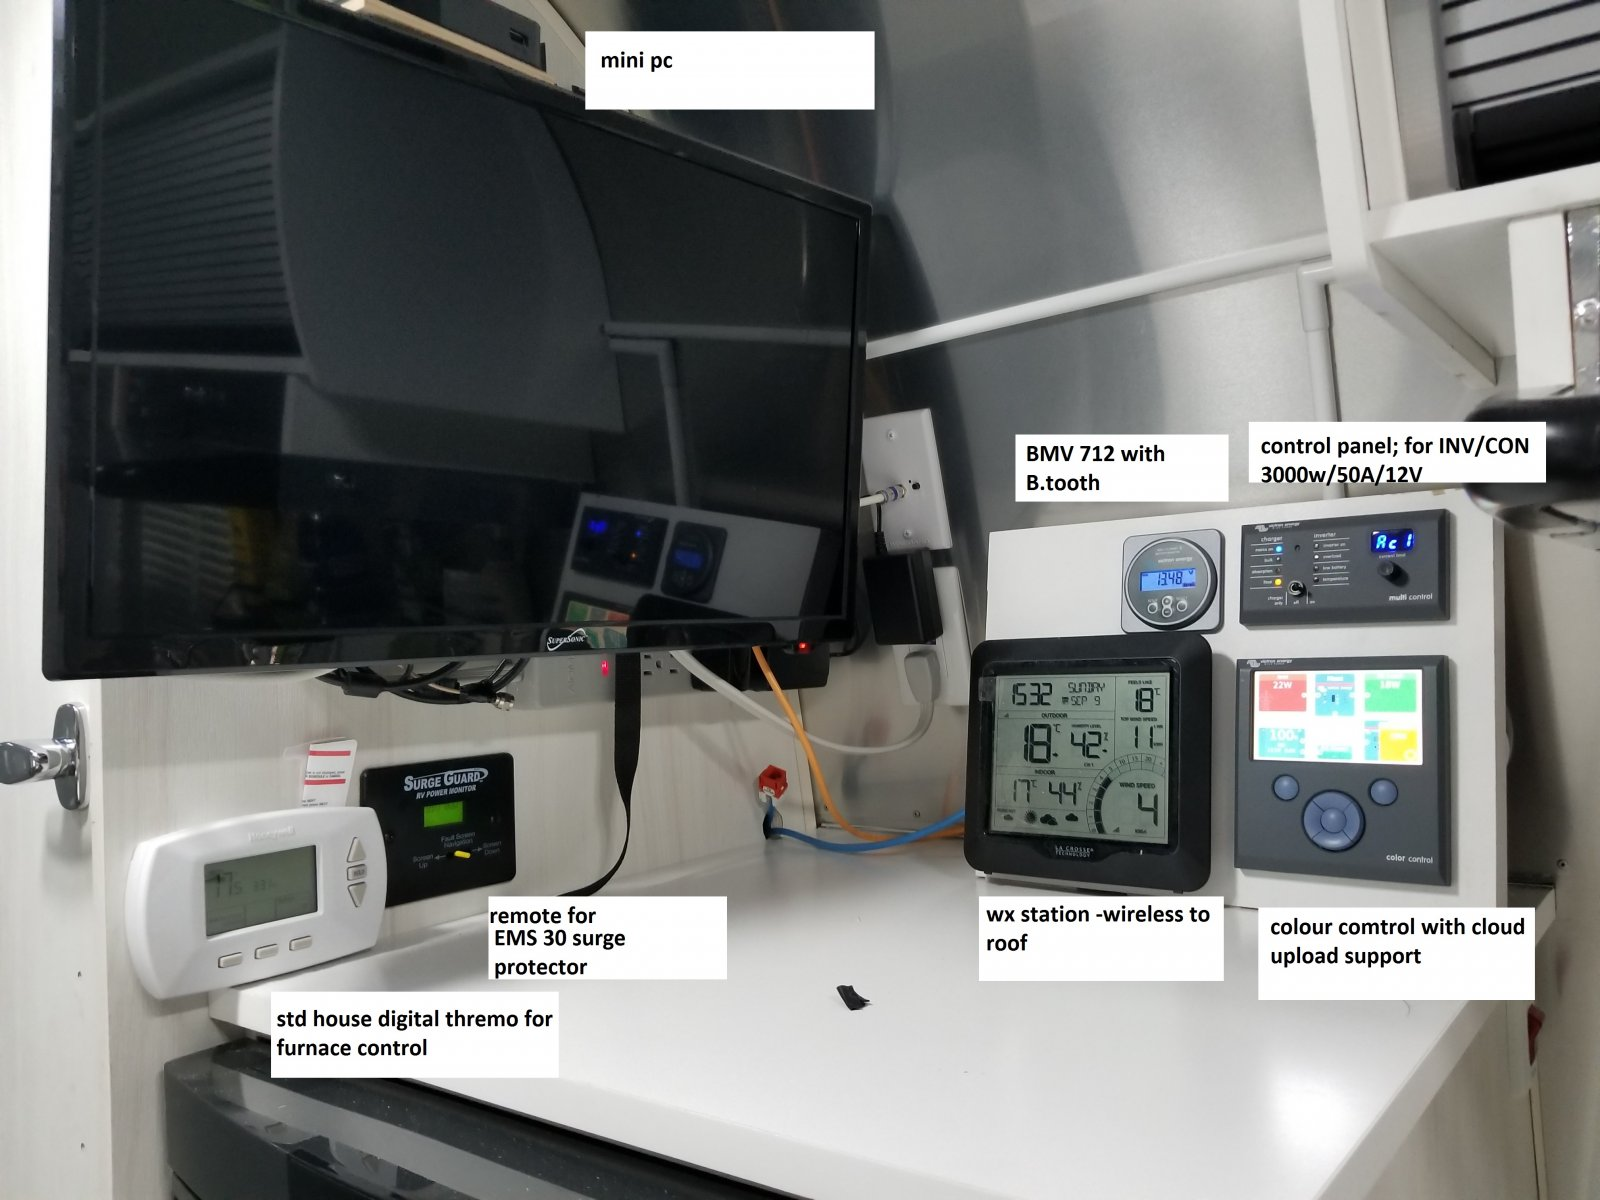 Click image for larger version  Name:monitoring tools above fridge-with annotations.jpg Views:102 Size:201.6 KB ID:328656